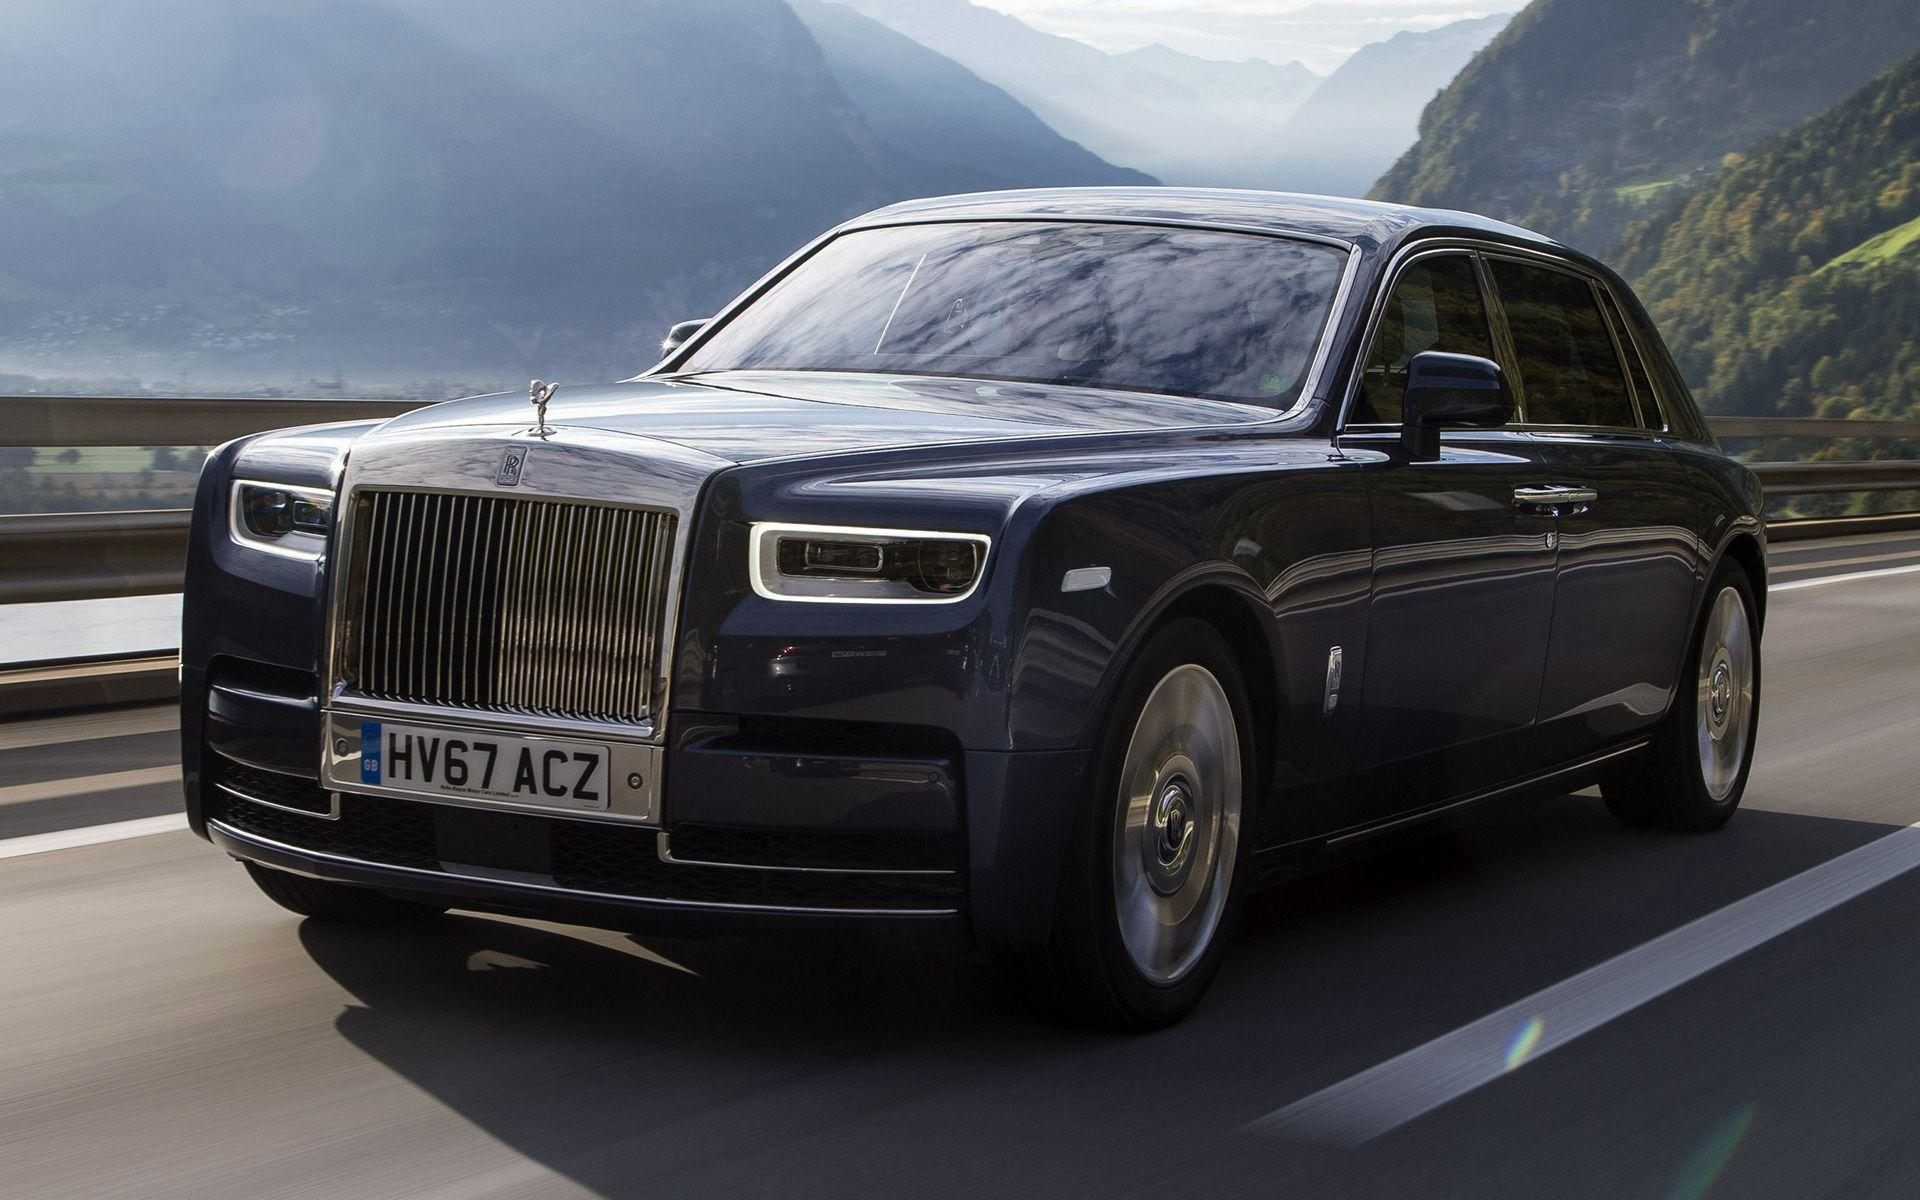 Rolls-Royce Phantom [EWB] (2017) Wallpapers and HD Images - Car Pixel